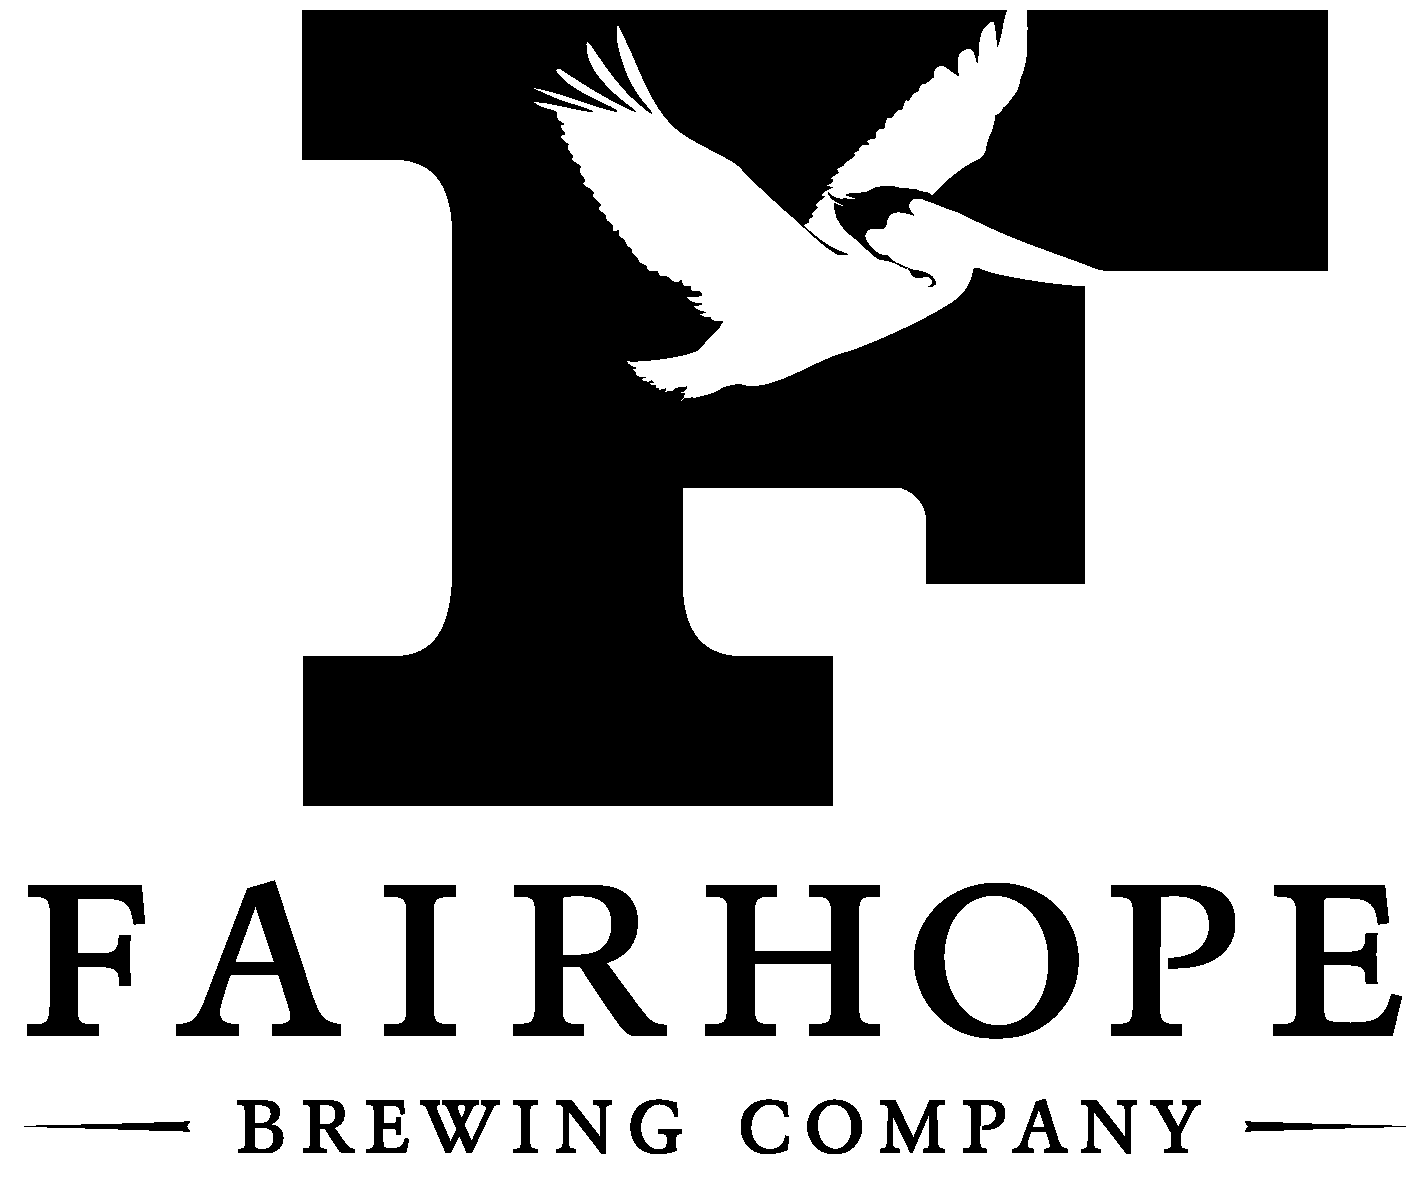 Fairhope Brewing Company Logo